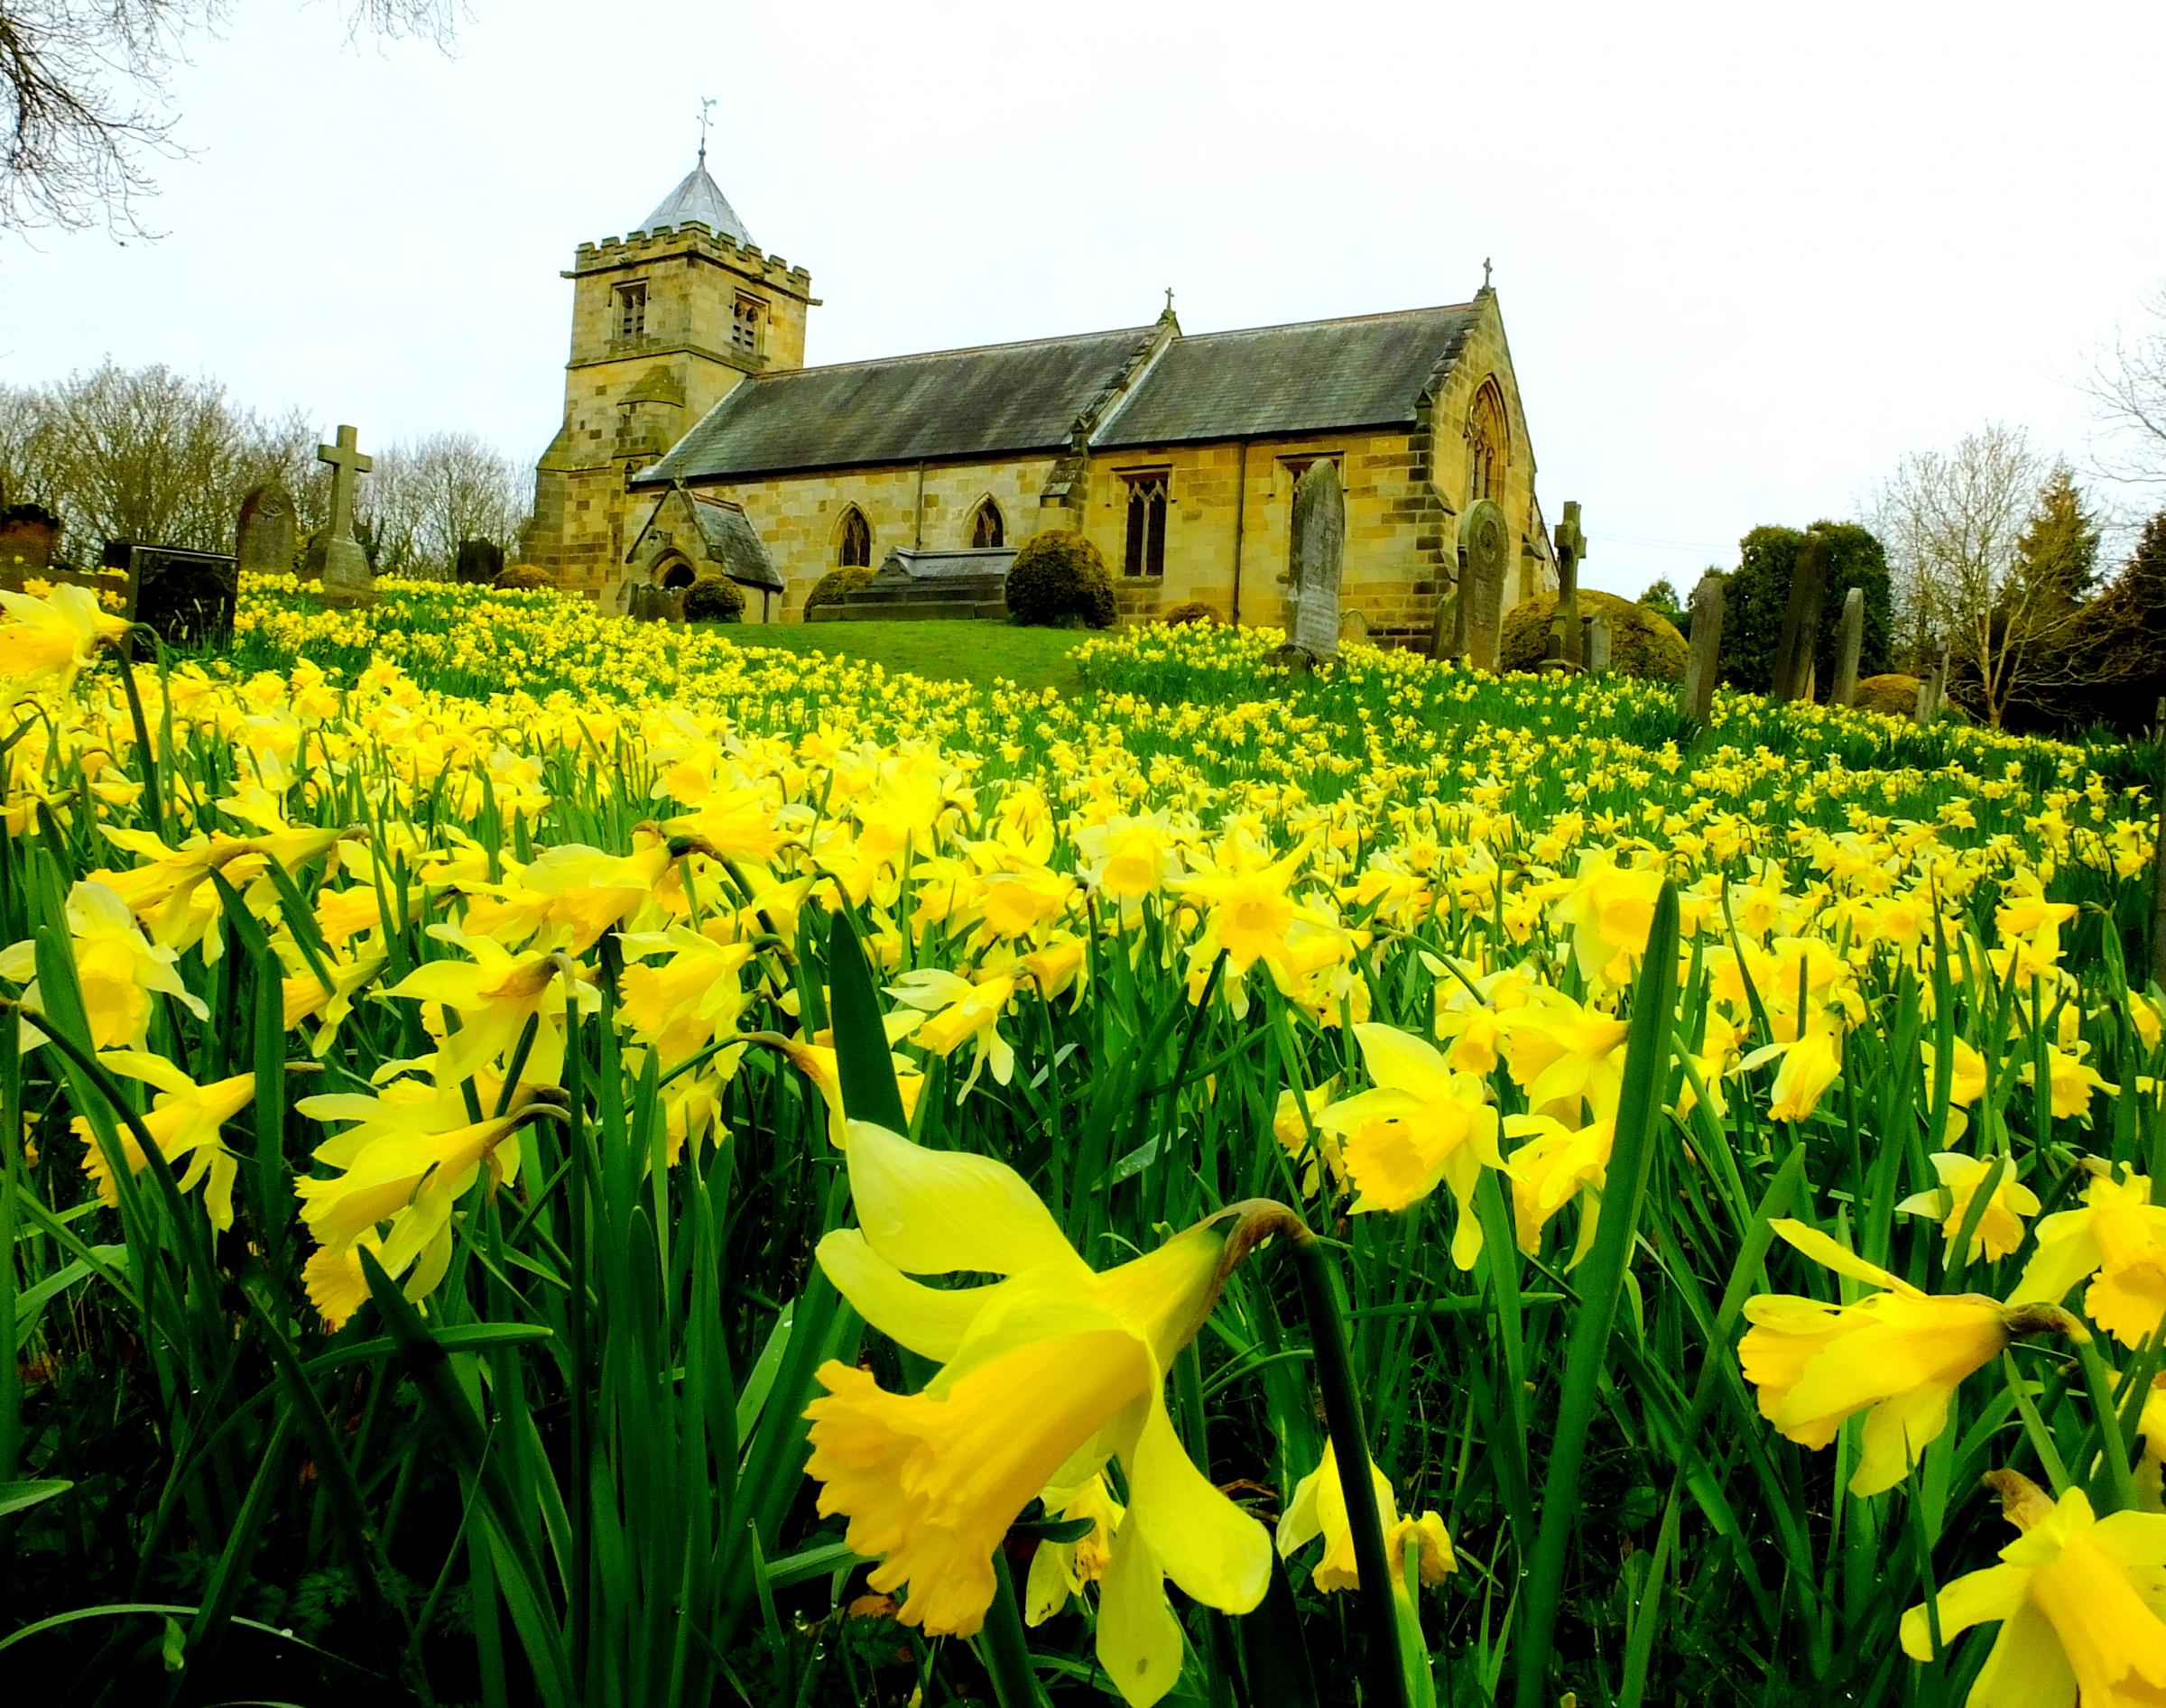 READER'S VIEW: Another idyllic image of spring - the daffodils in full bloom at All Saints Church, Crathorne, as pictured by Tim Dunn of Stokesley.